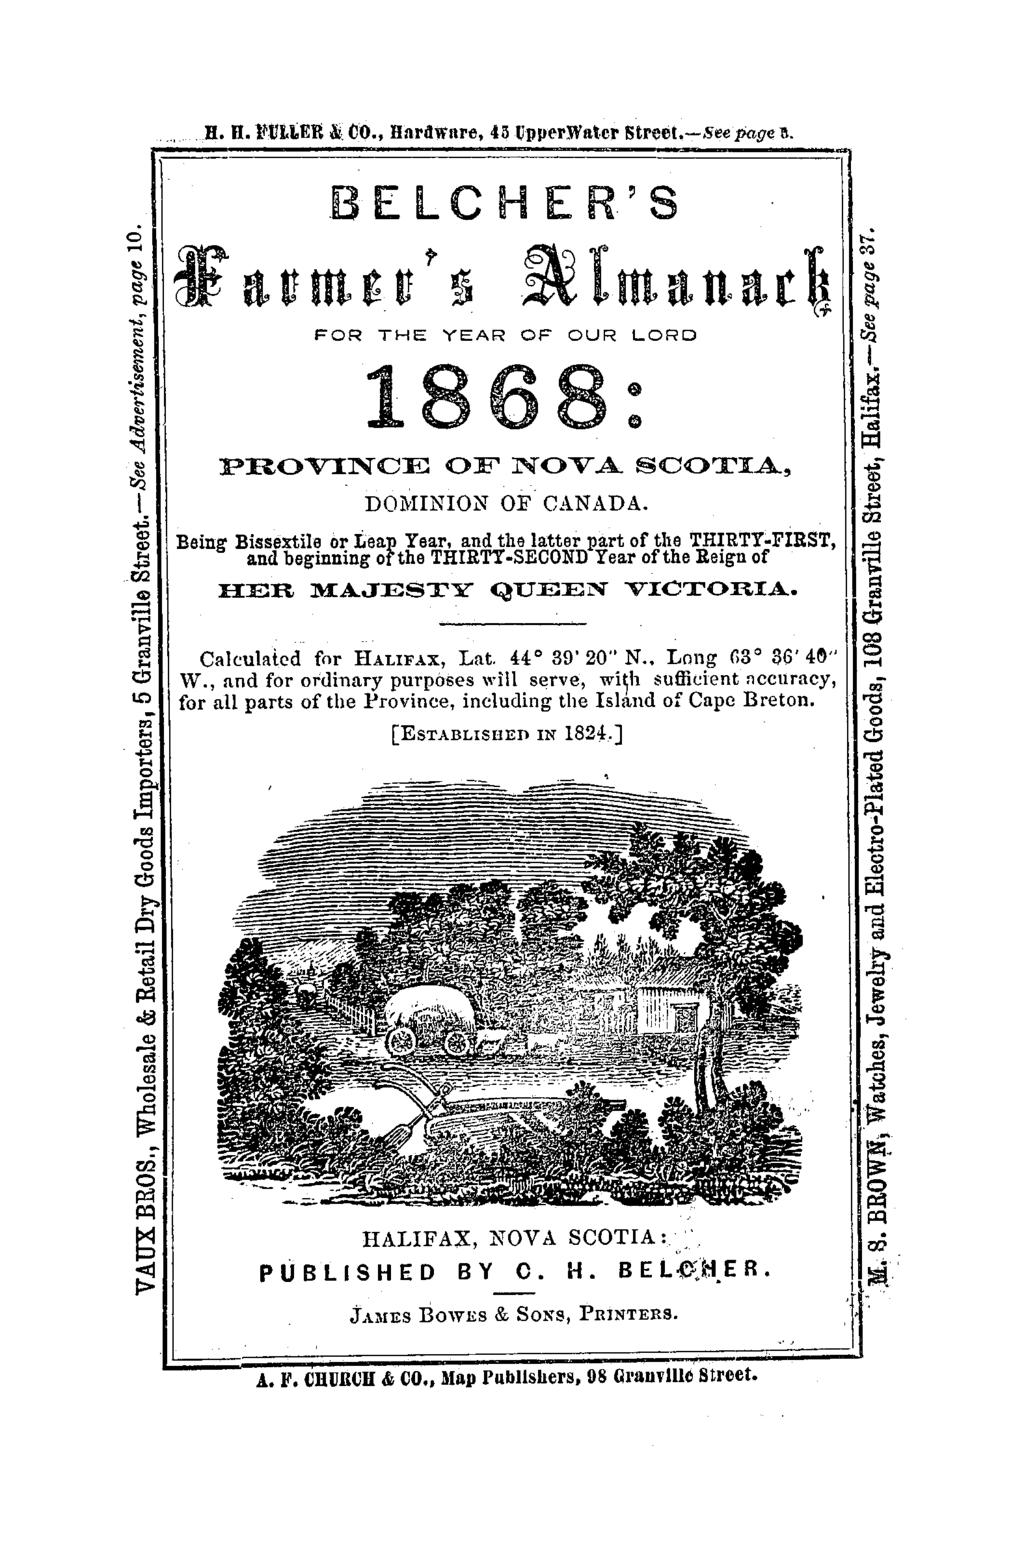 H. H. llvtter &. M., HardWare, 43 VpPe'rlVatcr Streel.-8ee page 11. BELCHER'S 4UUt'U t ~~ lmatt.ttt\ FOR THE YEAR OF OUR LORD 1868: PROVINCE OF NOVA SCOTIA. DOMINION OF CANADA.